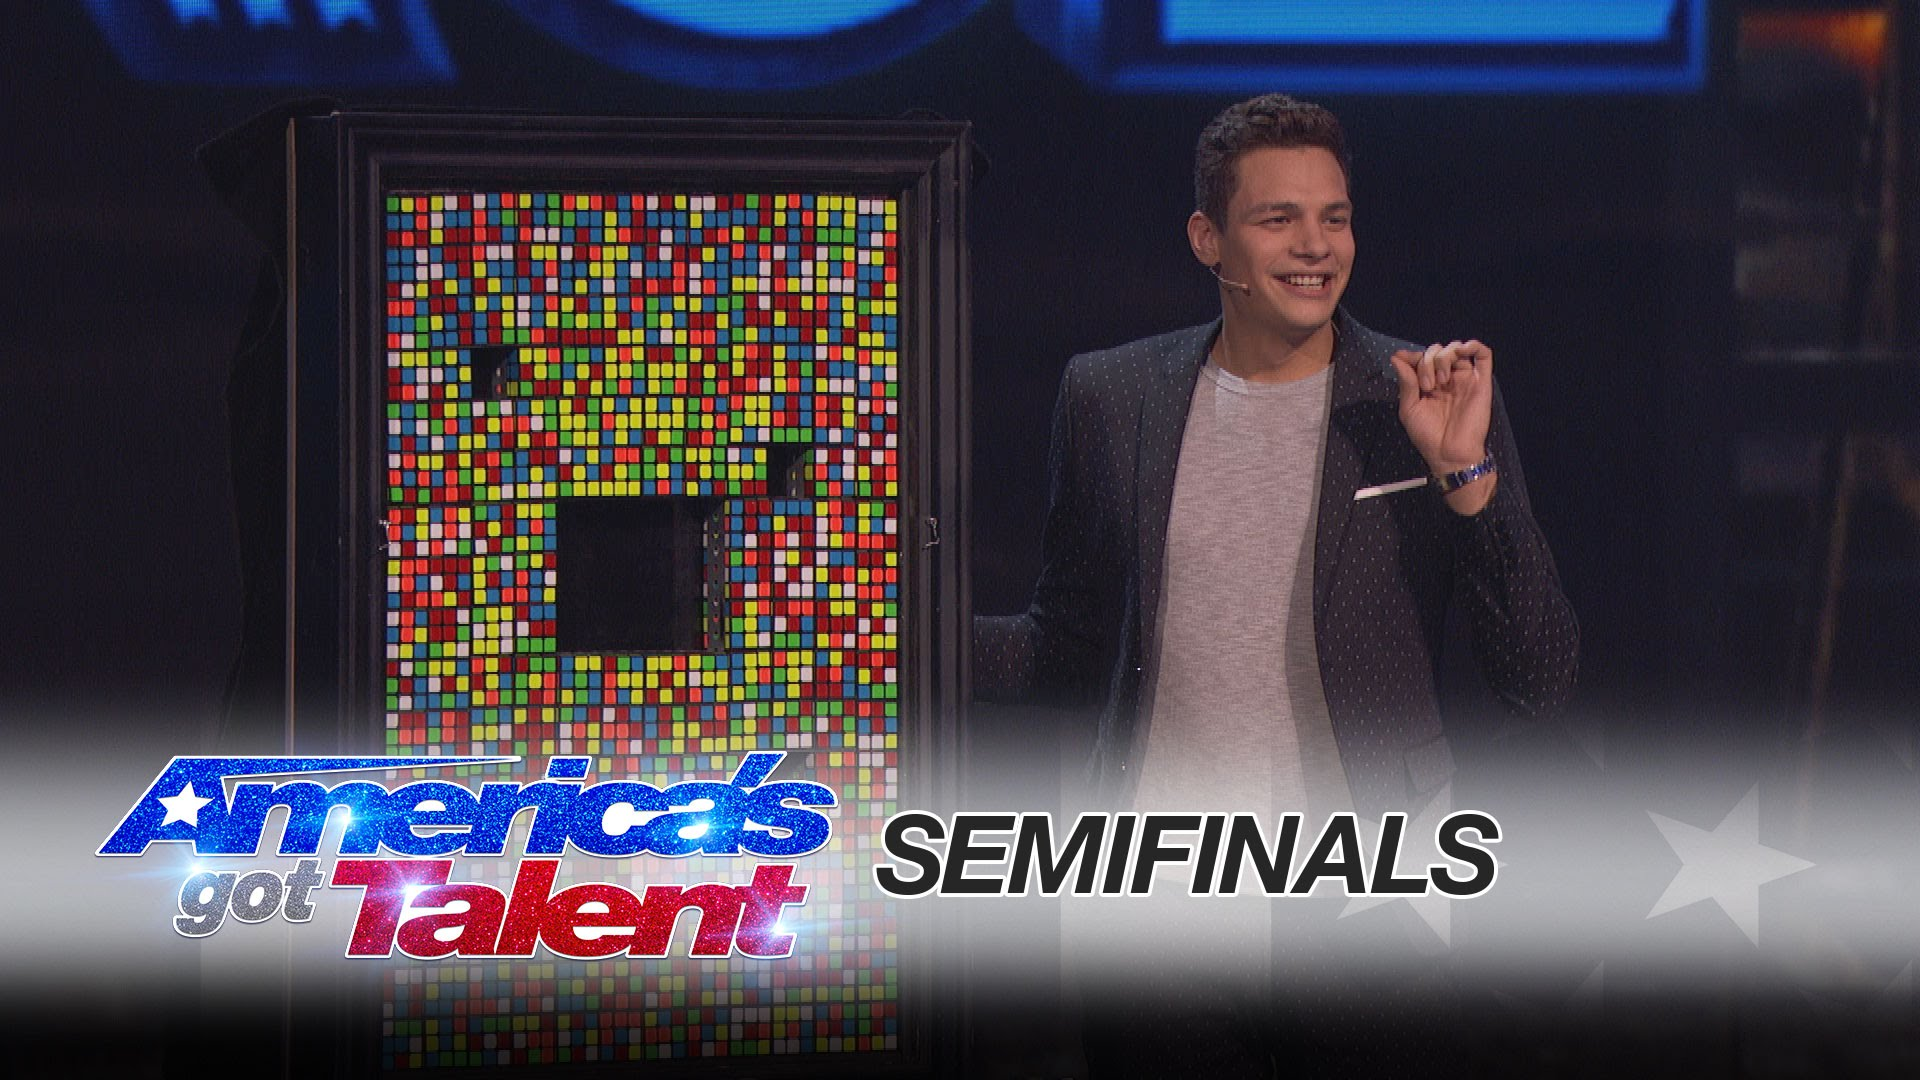 Magician Baffles Audience with Rubik's Cube Trick